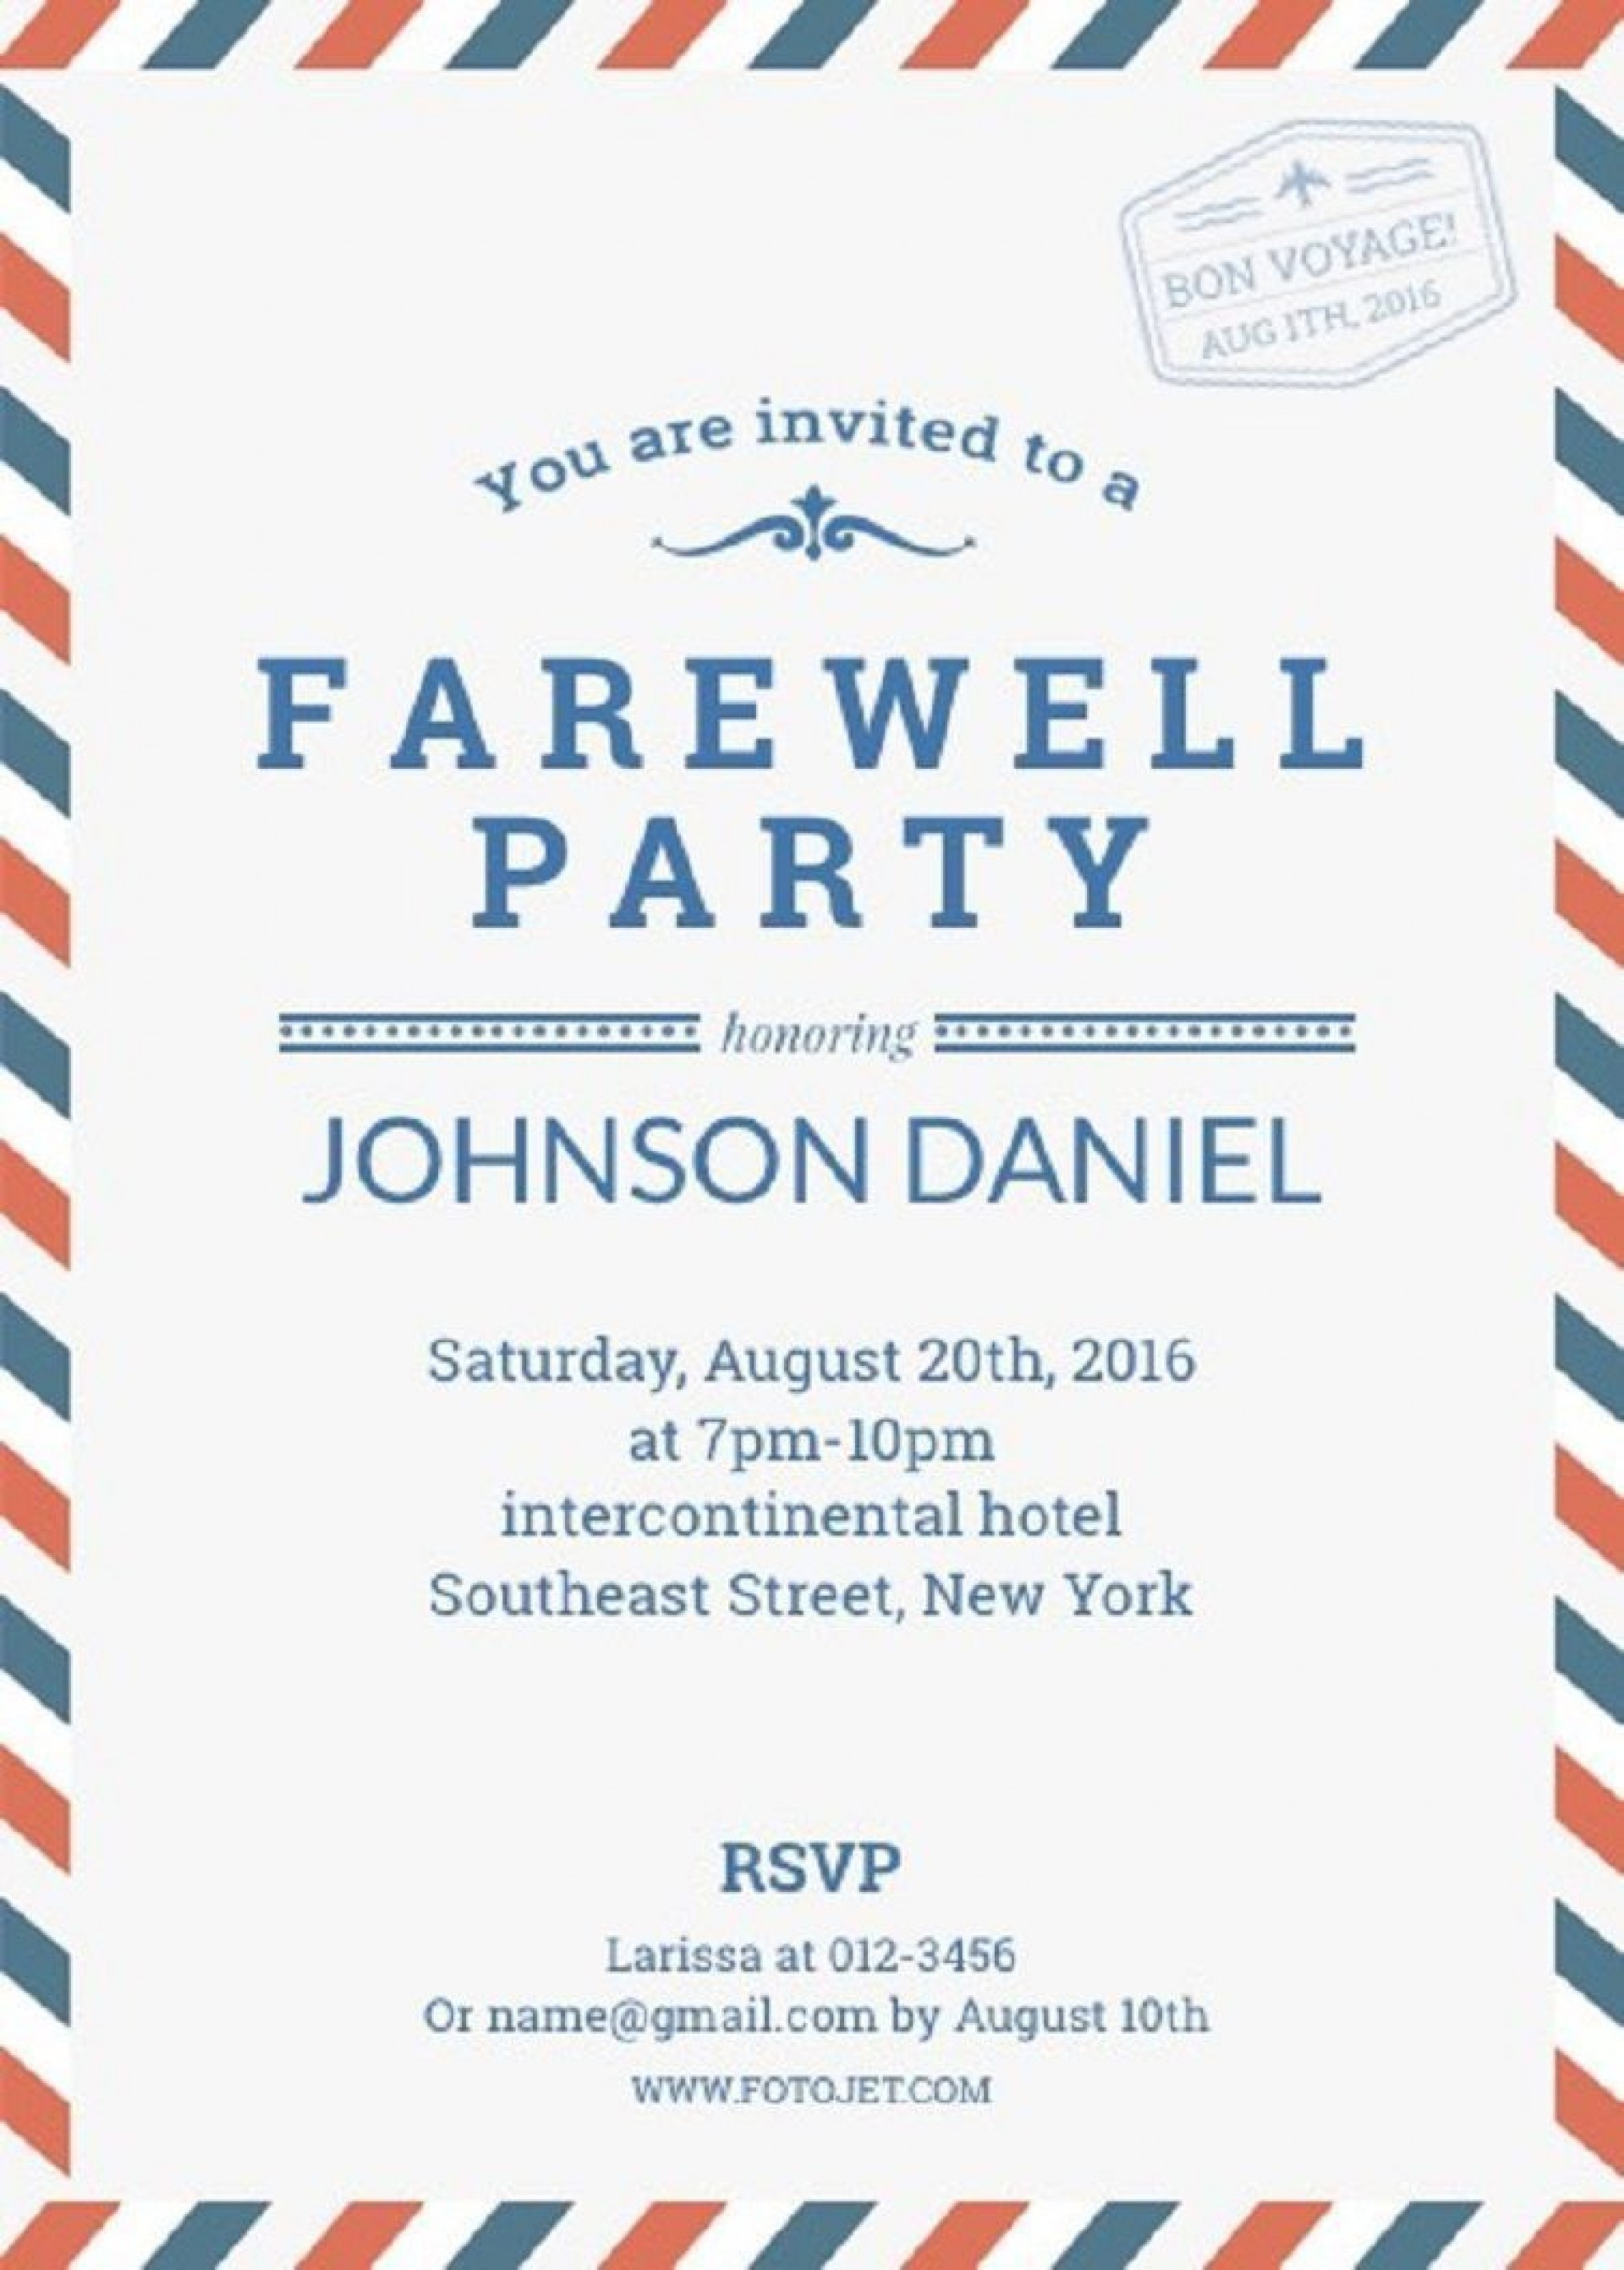 004 Shocking Going Away Party Invitation Template High Definition  Free Printable1920